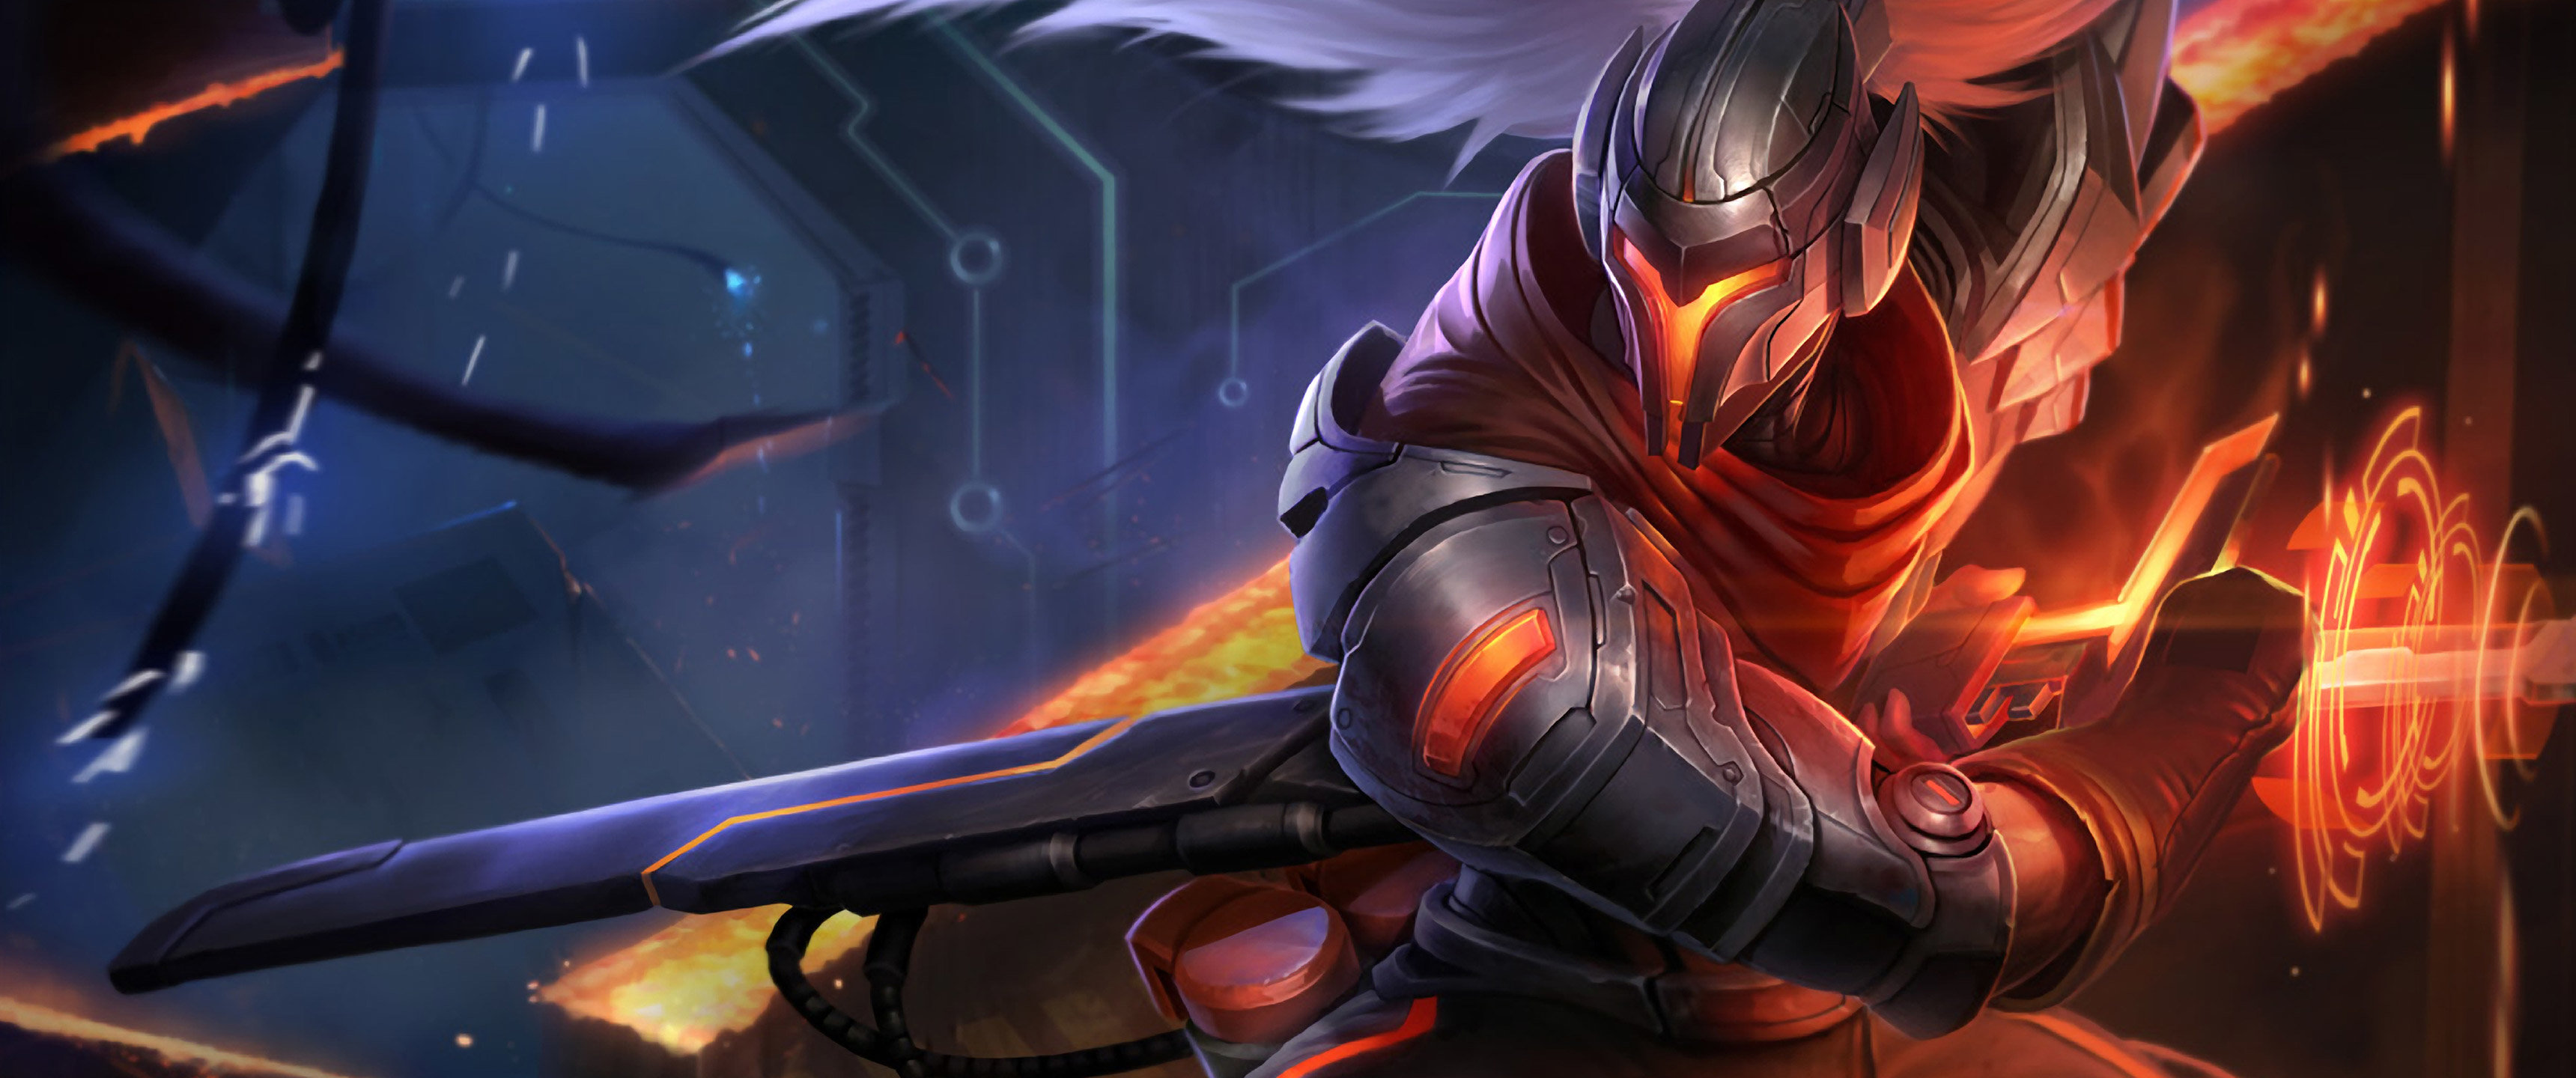 Download hd 3440x1440 Yasuo (League Of Legends) computer wallpaper ID:171144 for free